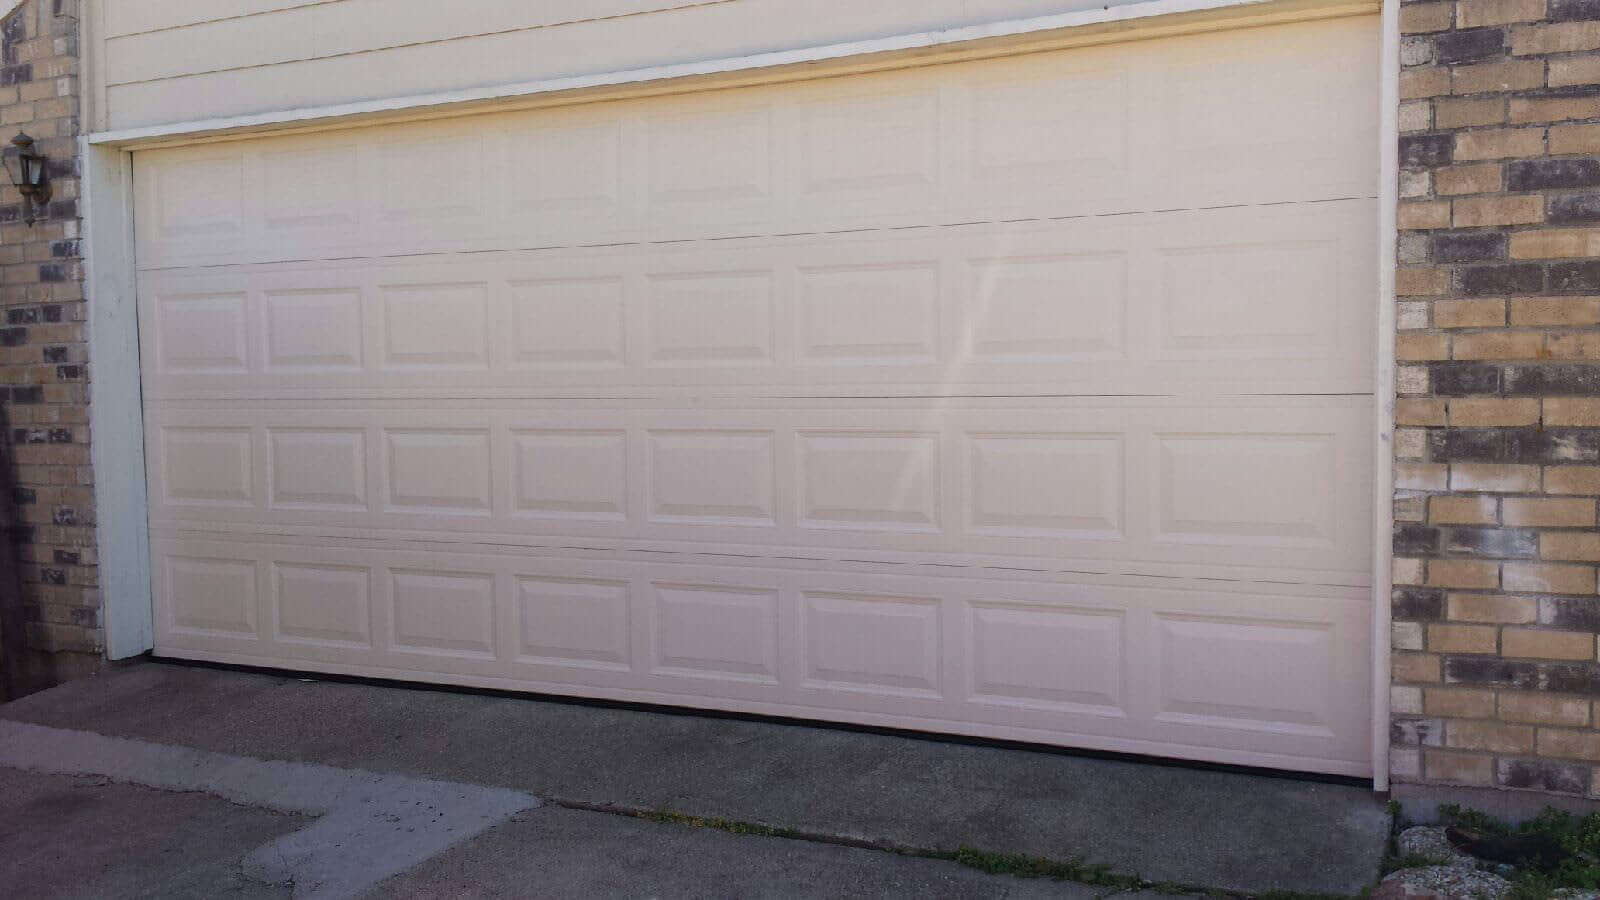 ... Christian Doors, In Dallas At 979 292 7144 Or Fort Worth At  817 224 2227, 24 Hours A Day, 7 Days A Week For All Of Your Commercial  Garage Door Needs.